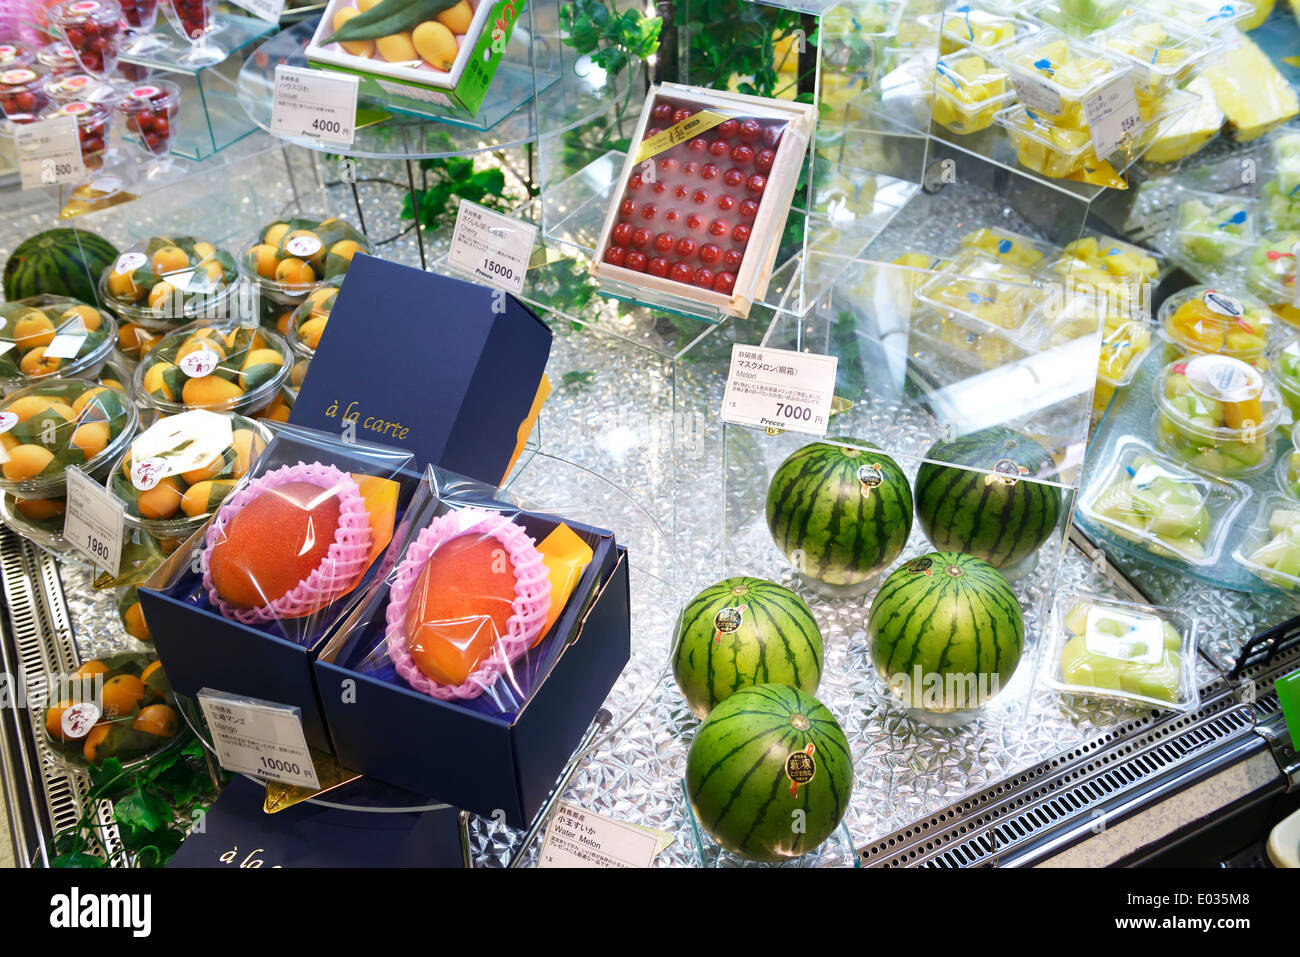 Expensive fruits, watermelon, mango on display in a Japanese supermarket. Tokyo, Japan. - Stock Image